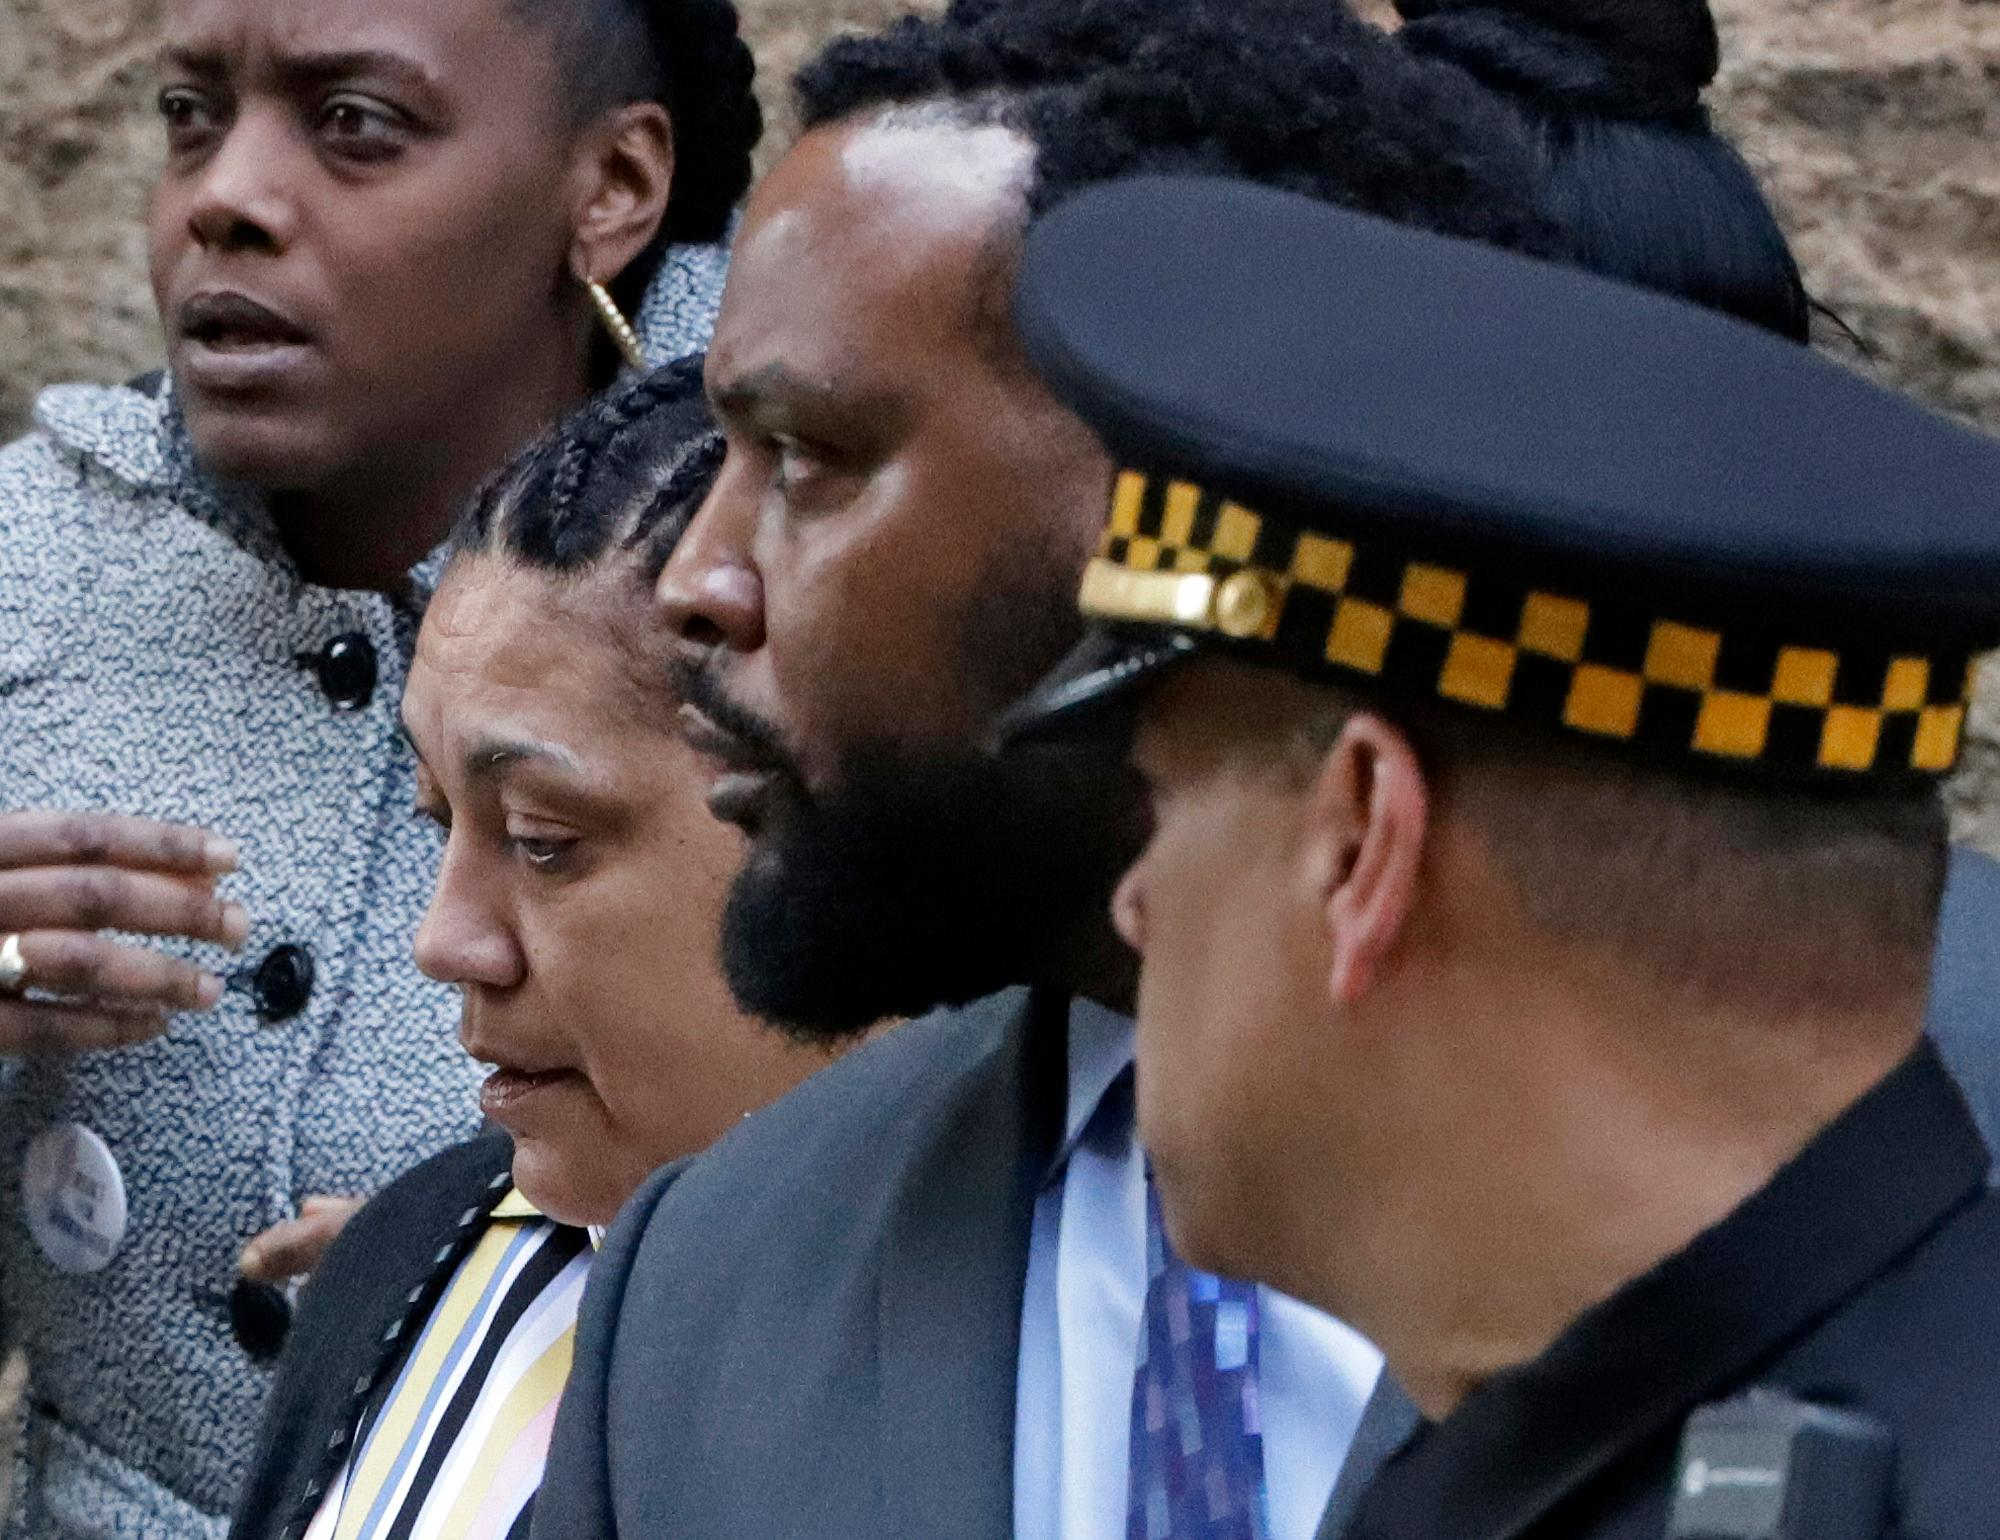 Michelle Kenney, second from left, the mother of Antwon Rose II, leaves the Allegheny County Courthouse with her lawyer S. Lee Merritt, center, after day two of the trial for Michael Rosfeld, a former police officer in East Pittsburgh, Pa., Wednesday, March 20, 2019. (AP Photo/Gene J. Puskar)